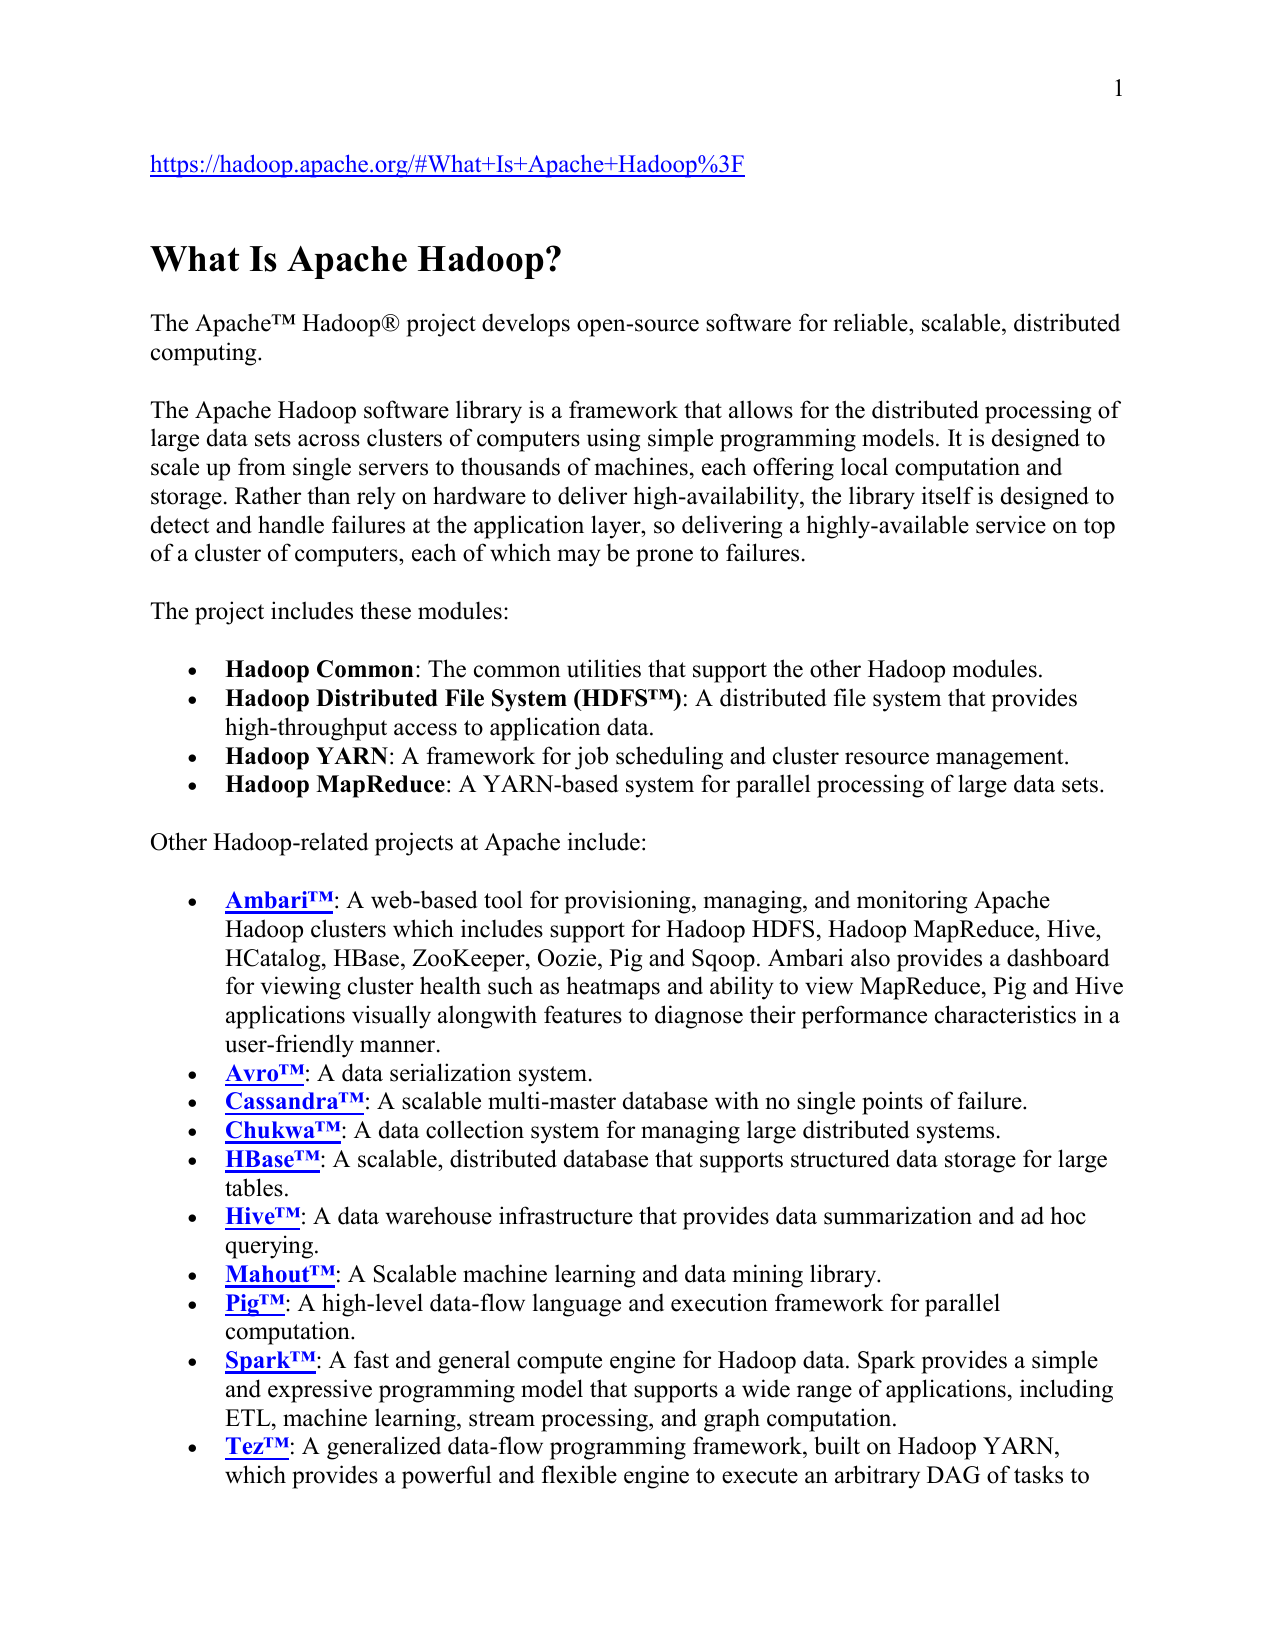 Hadoop Distributed File System, Apache HBase